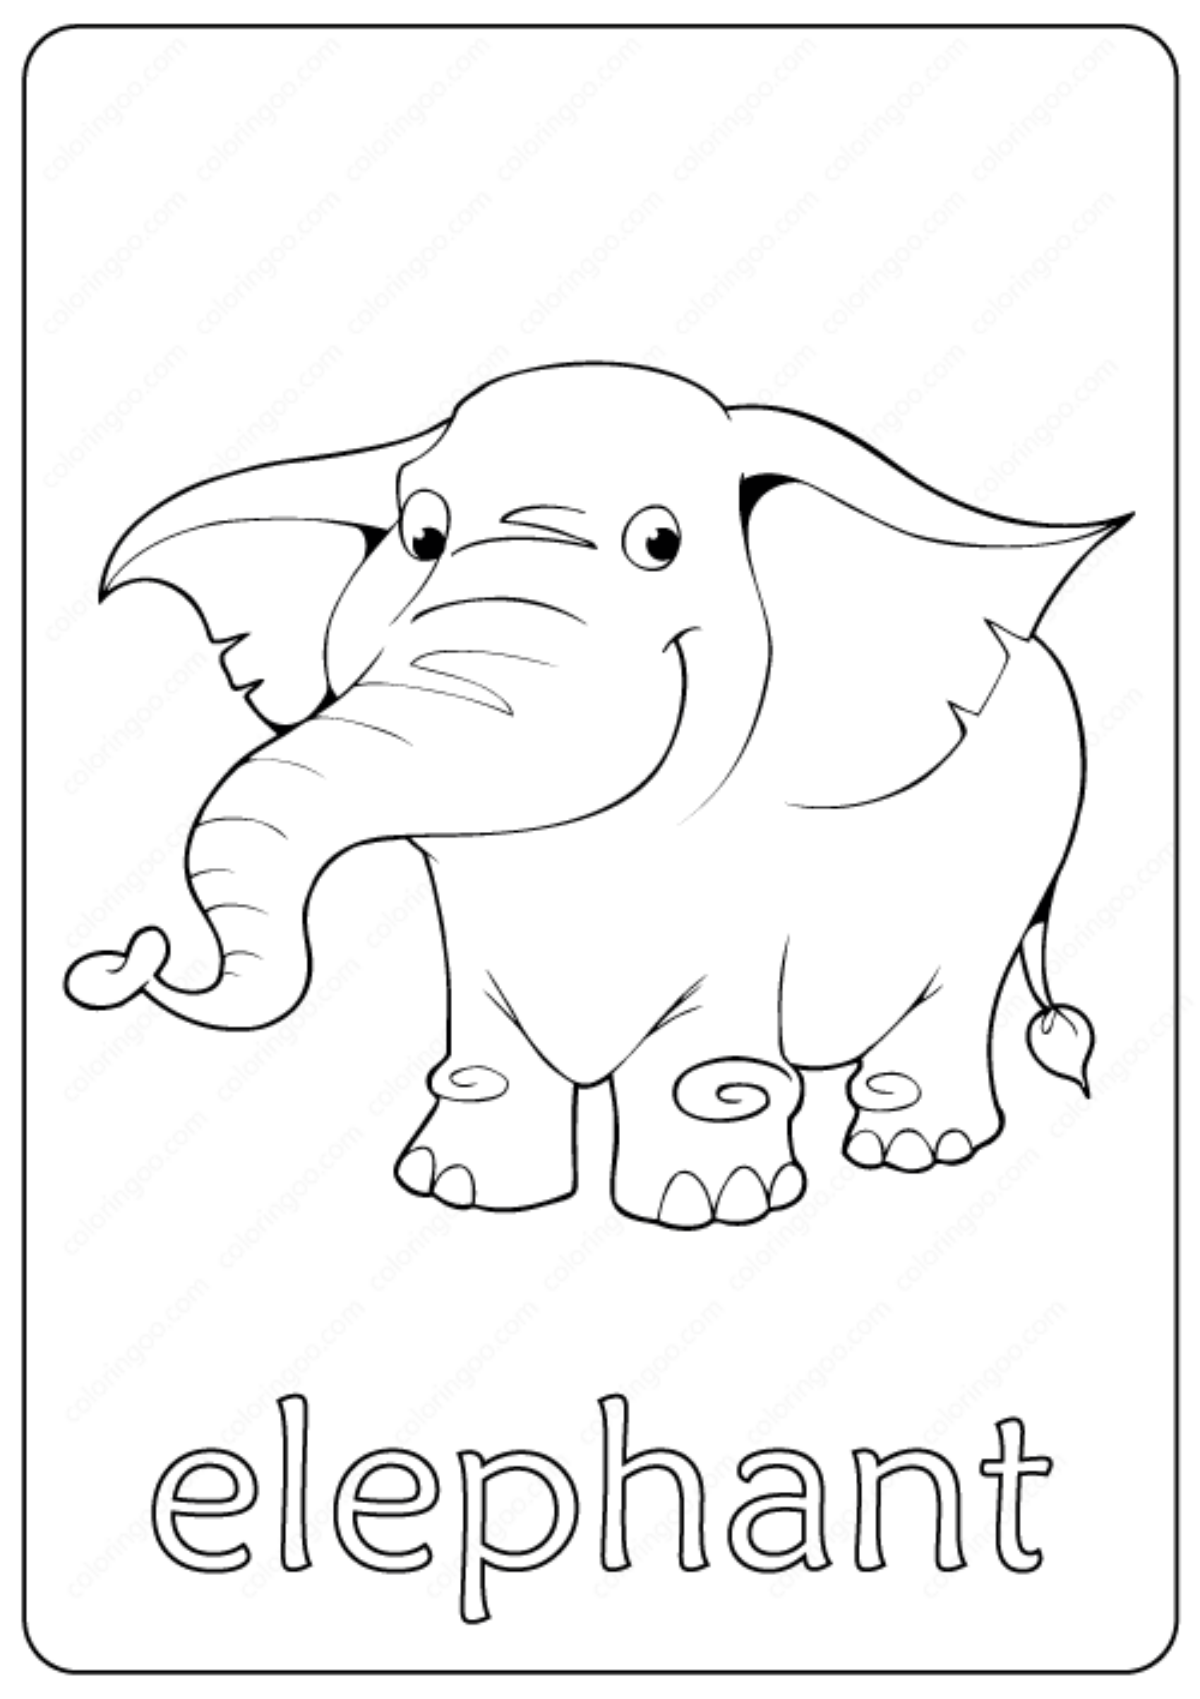 Free Printable Donkey Coloring Pages For Kids | Nativity coloring ... | 1699x1200